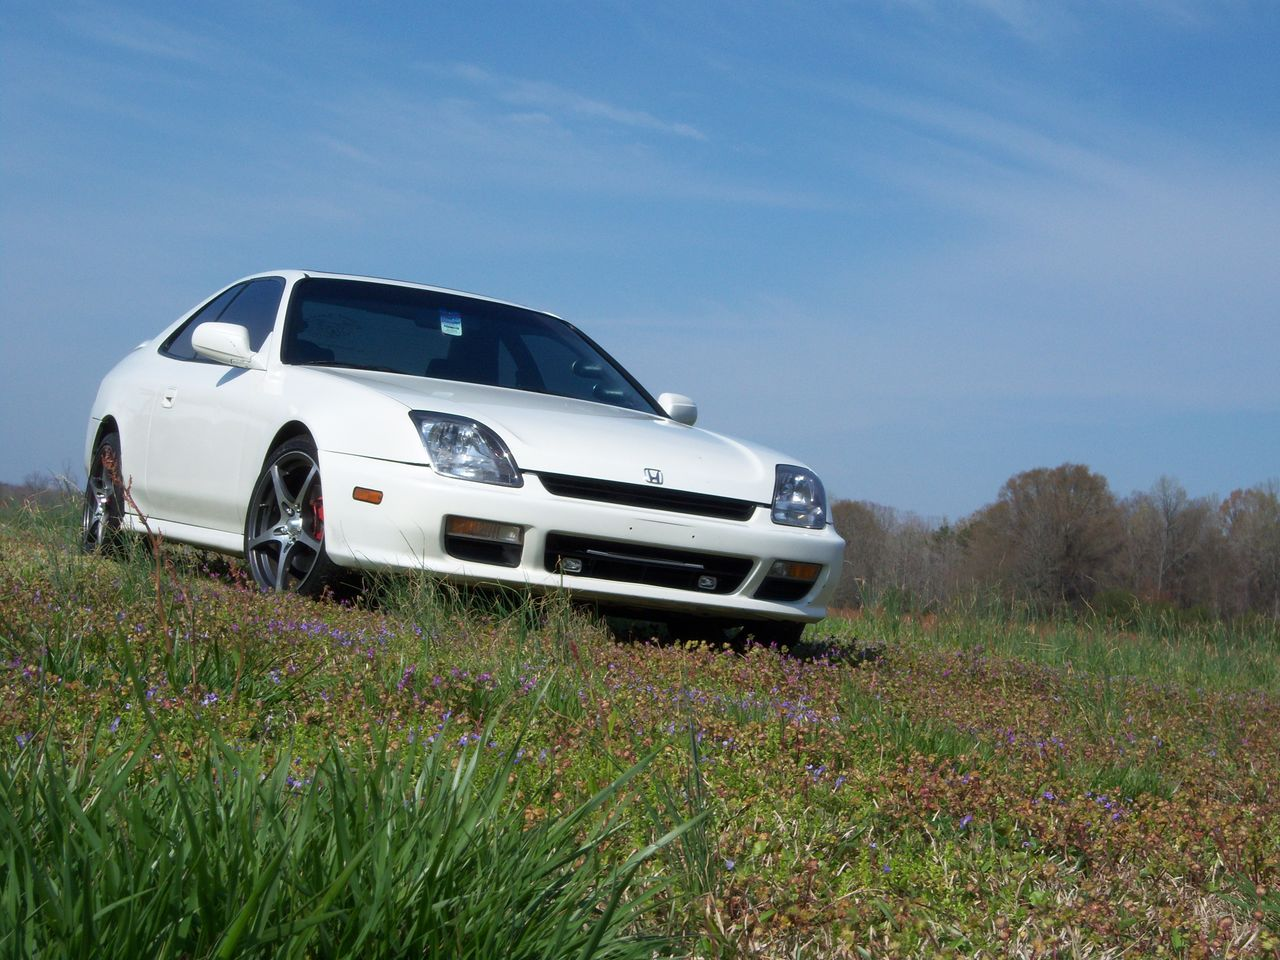 2001 Honda Prelude 2 Dr STD Coupe picture